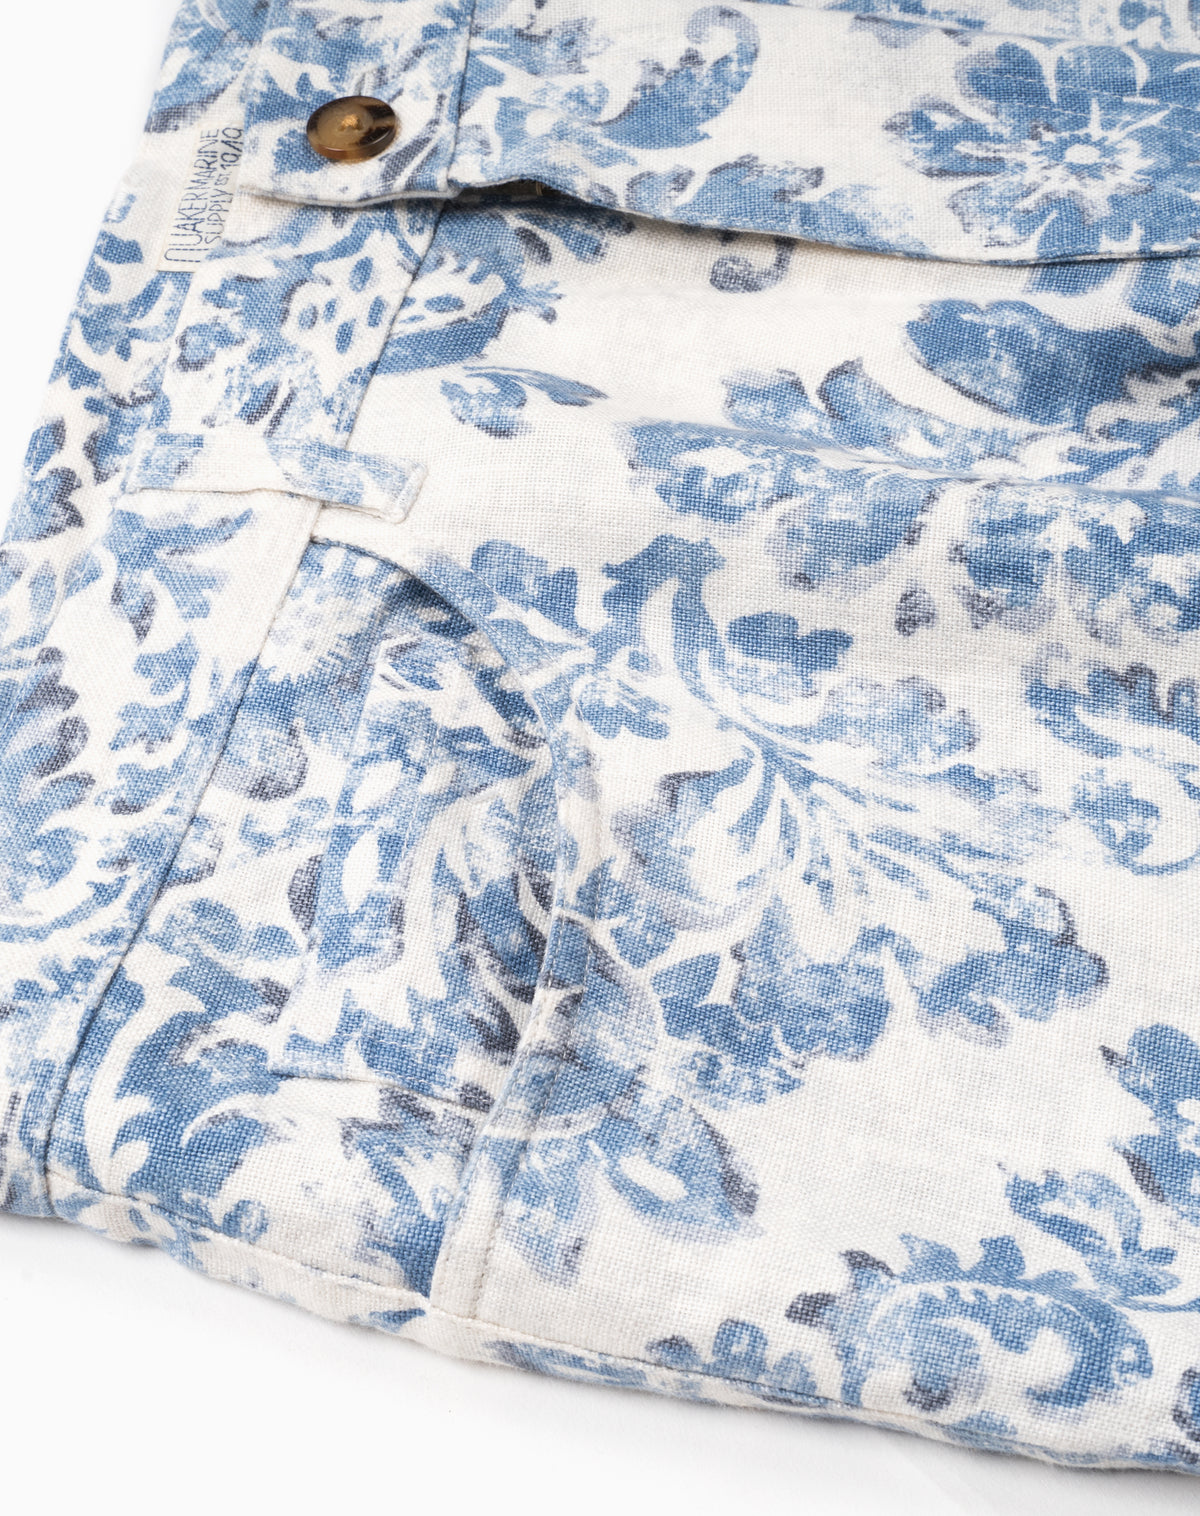 Printed 5-Pocket in Blue Floral